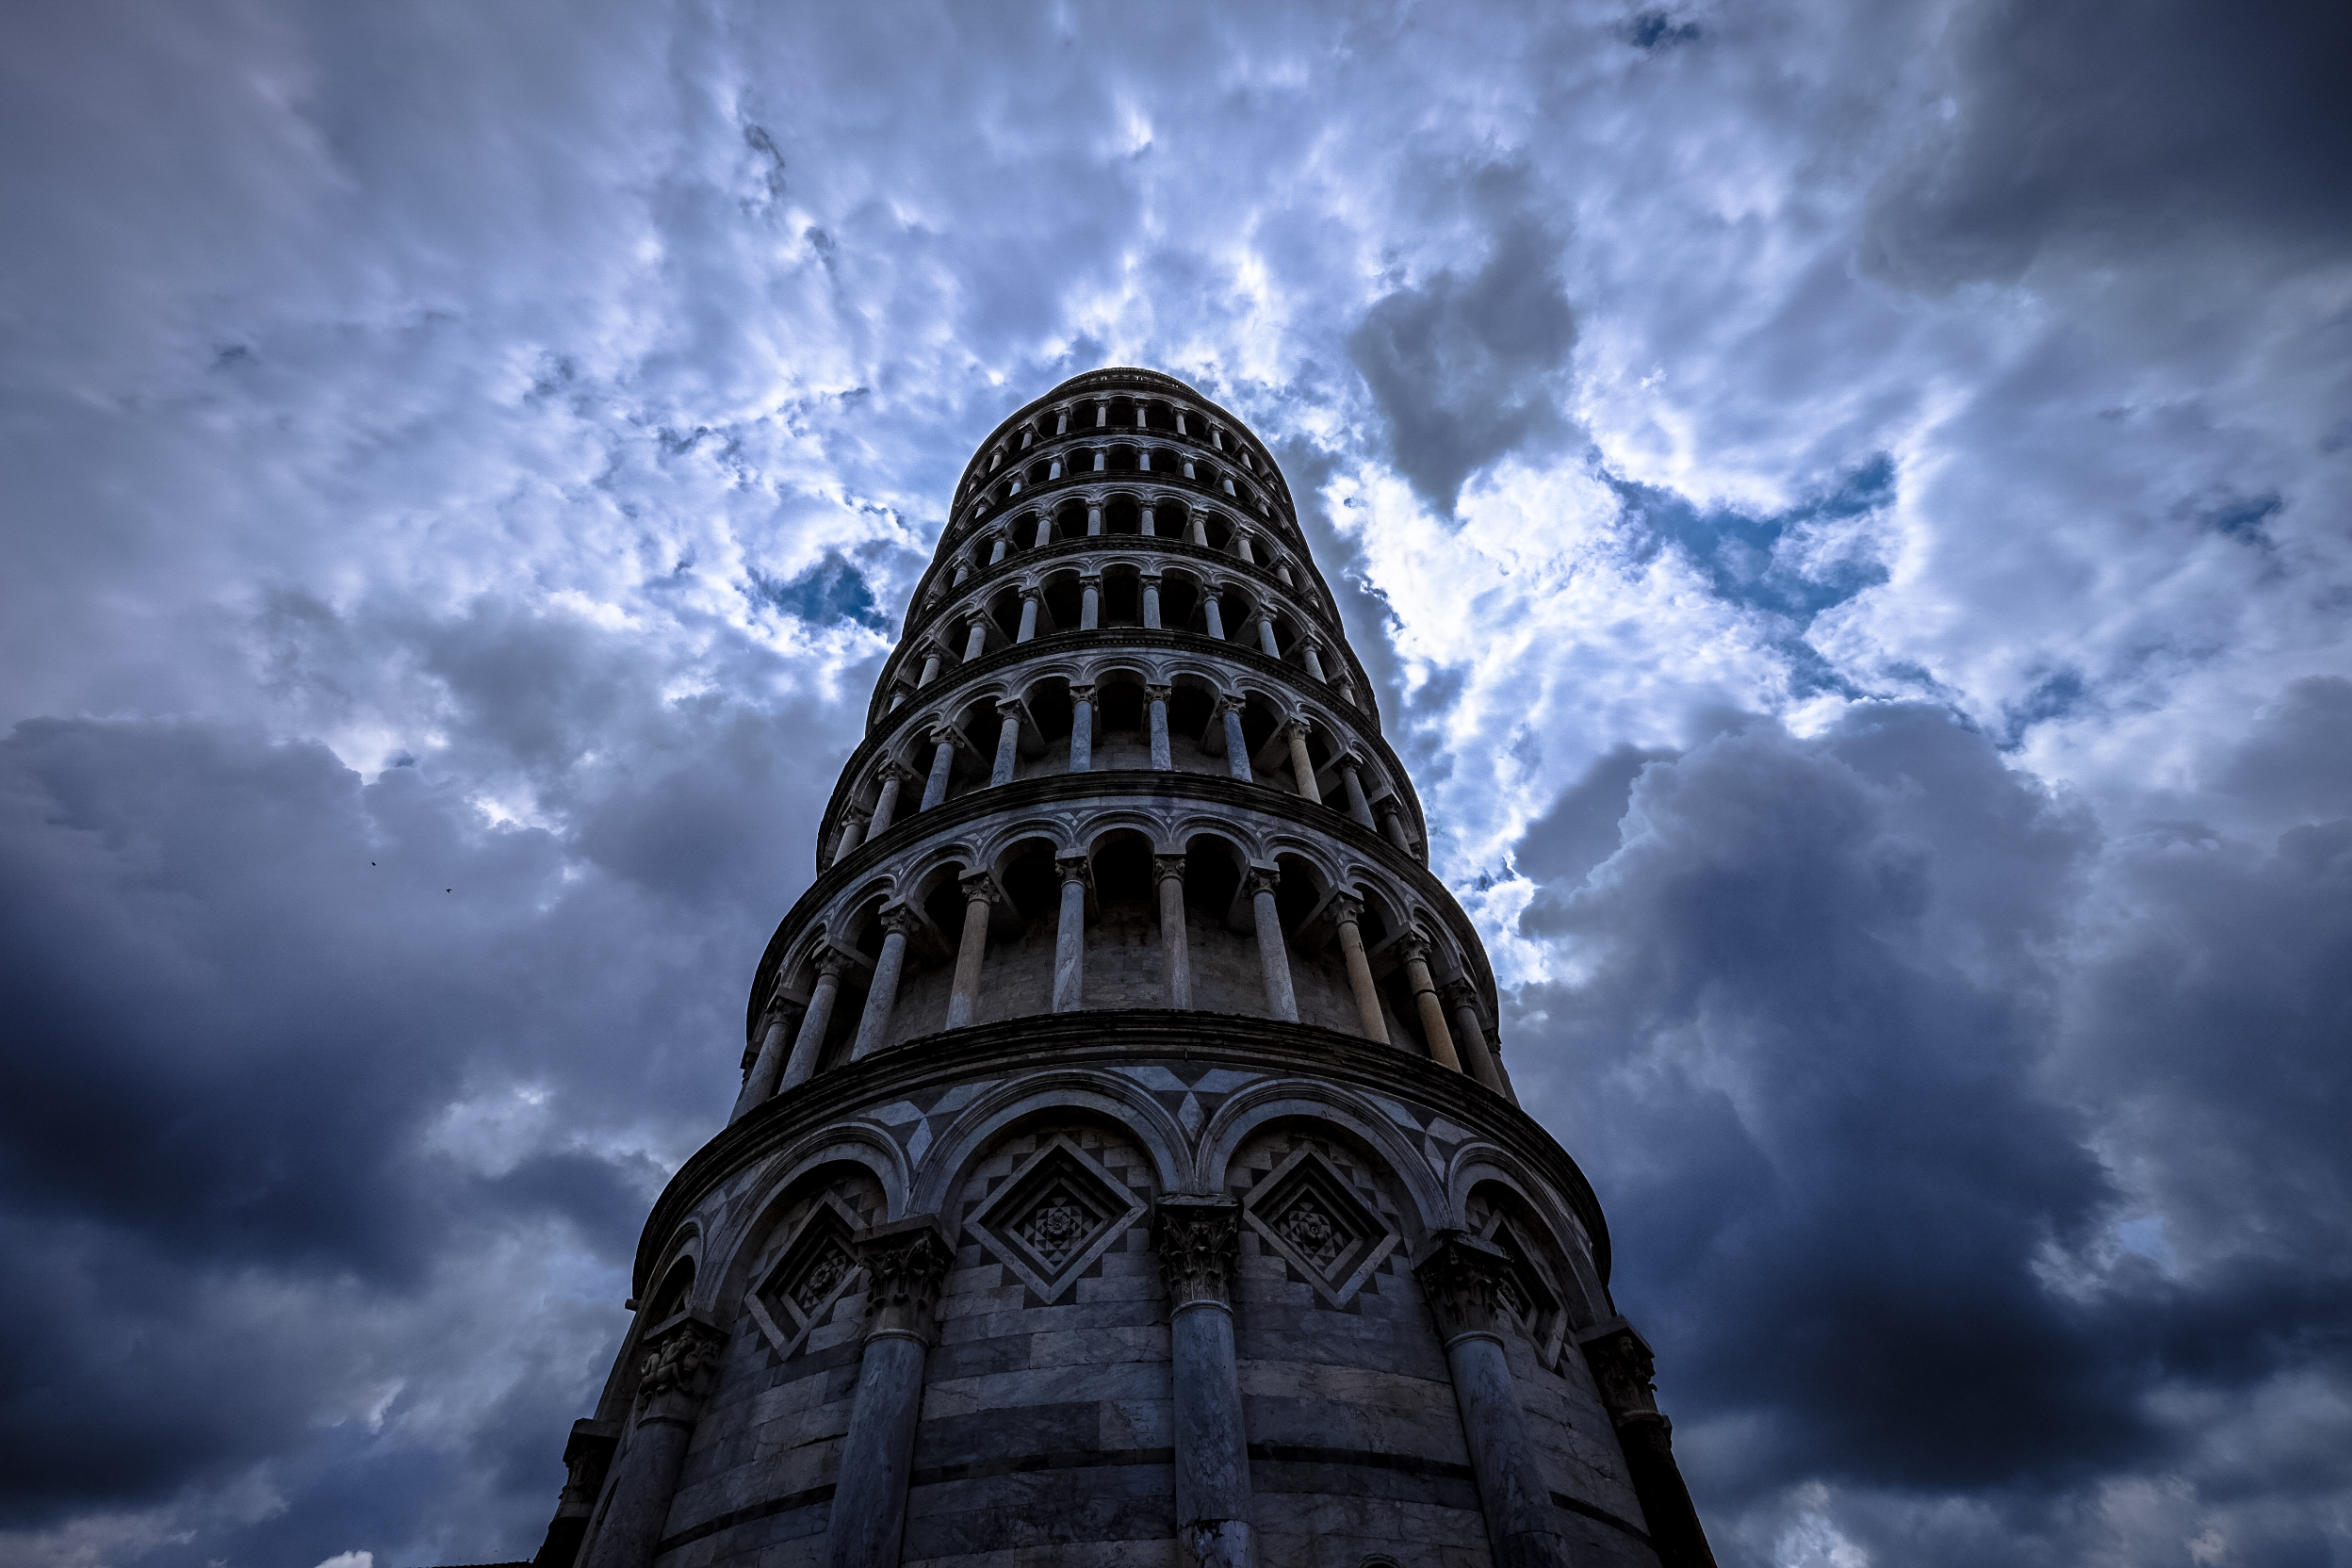 Low Angle Photo Of Grey Concrete Tower Free Stock Photo